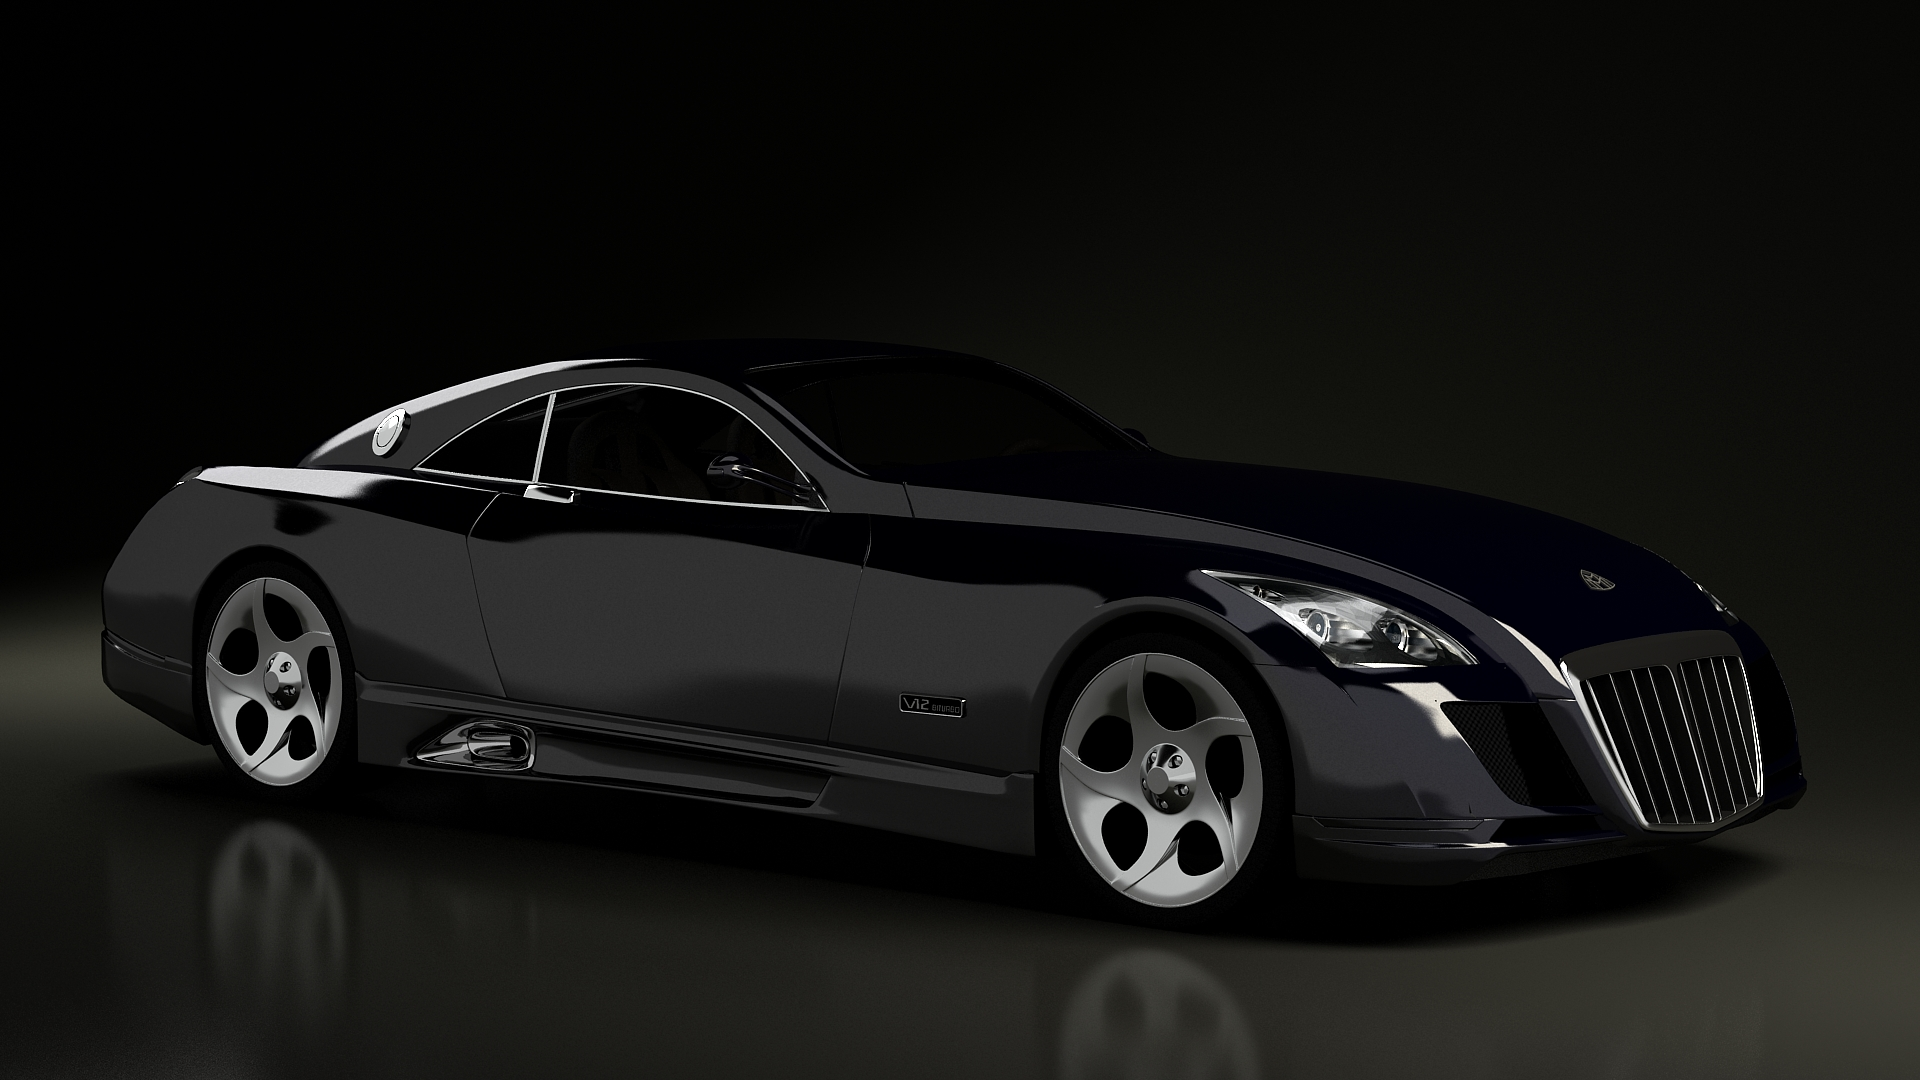 Best 41 Maybach Exelero Wallpaper on HipWallpaper Maybach 1920x1080